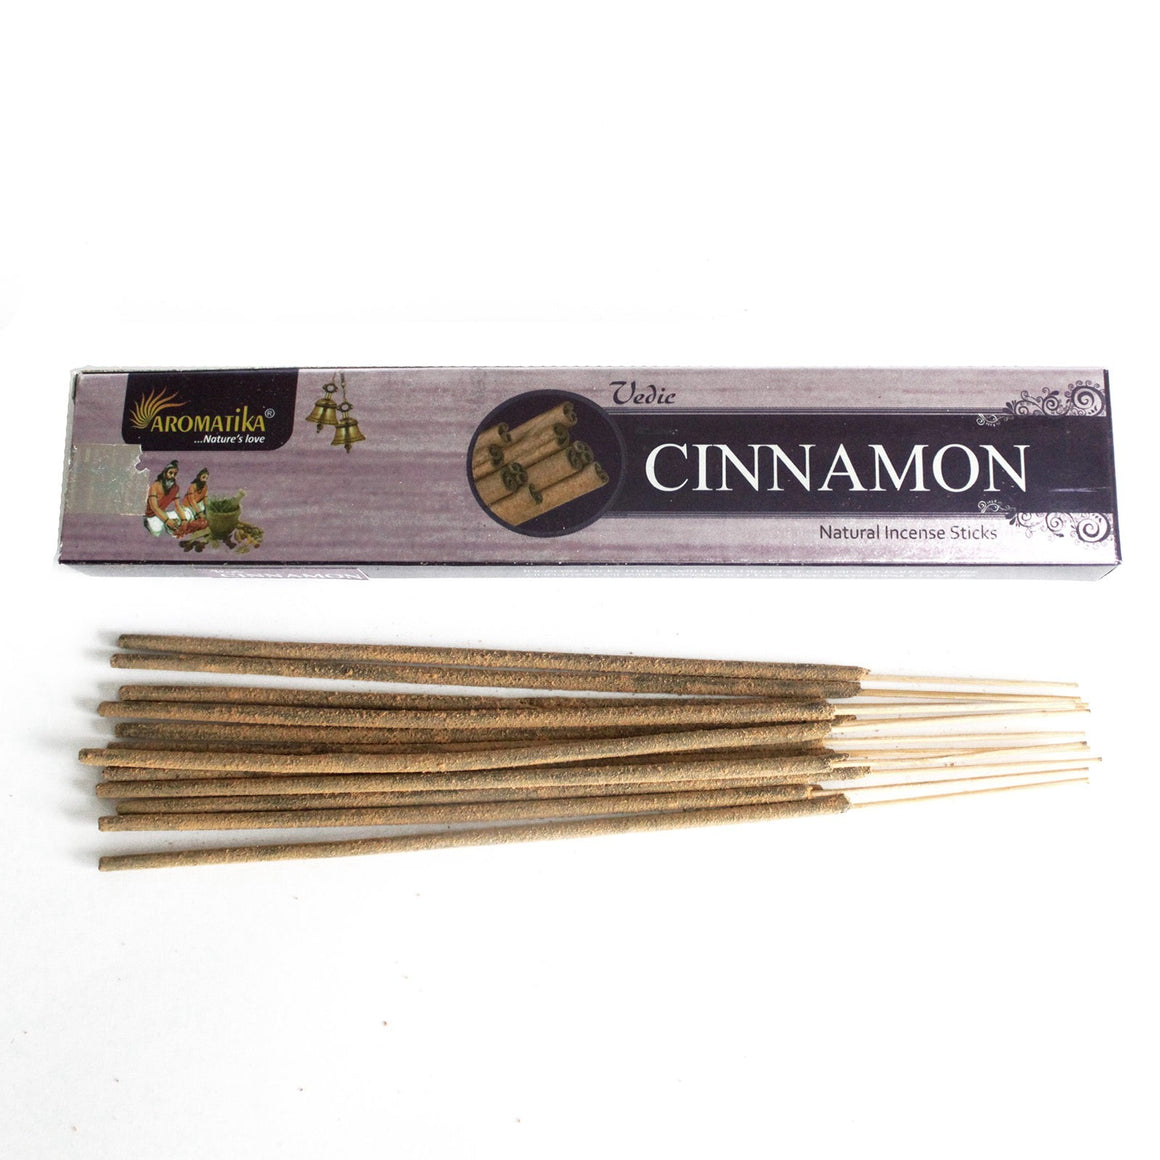 Vedic Natural Incense Sticks - Cinnamon